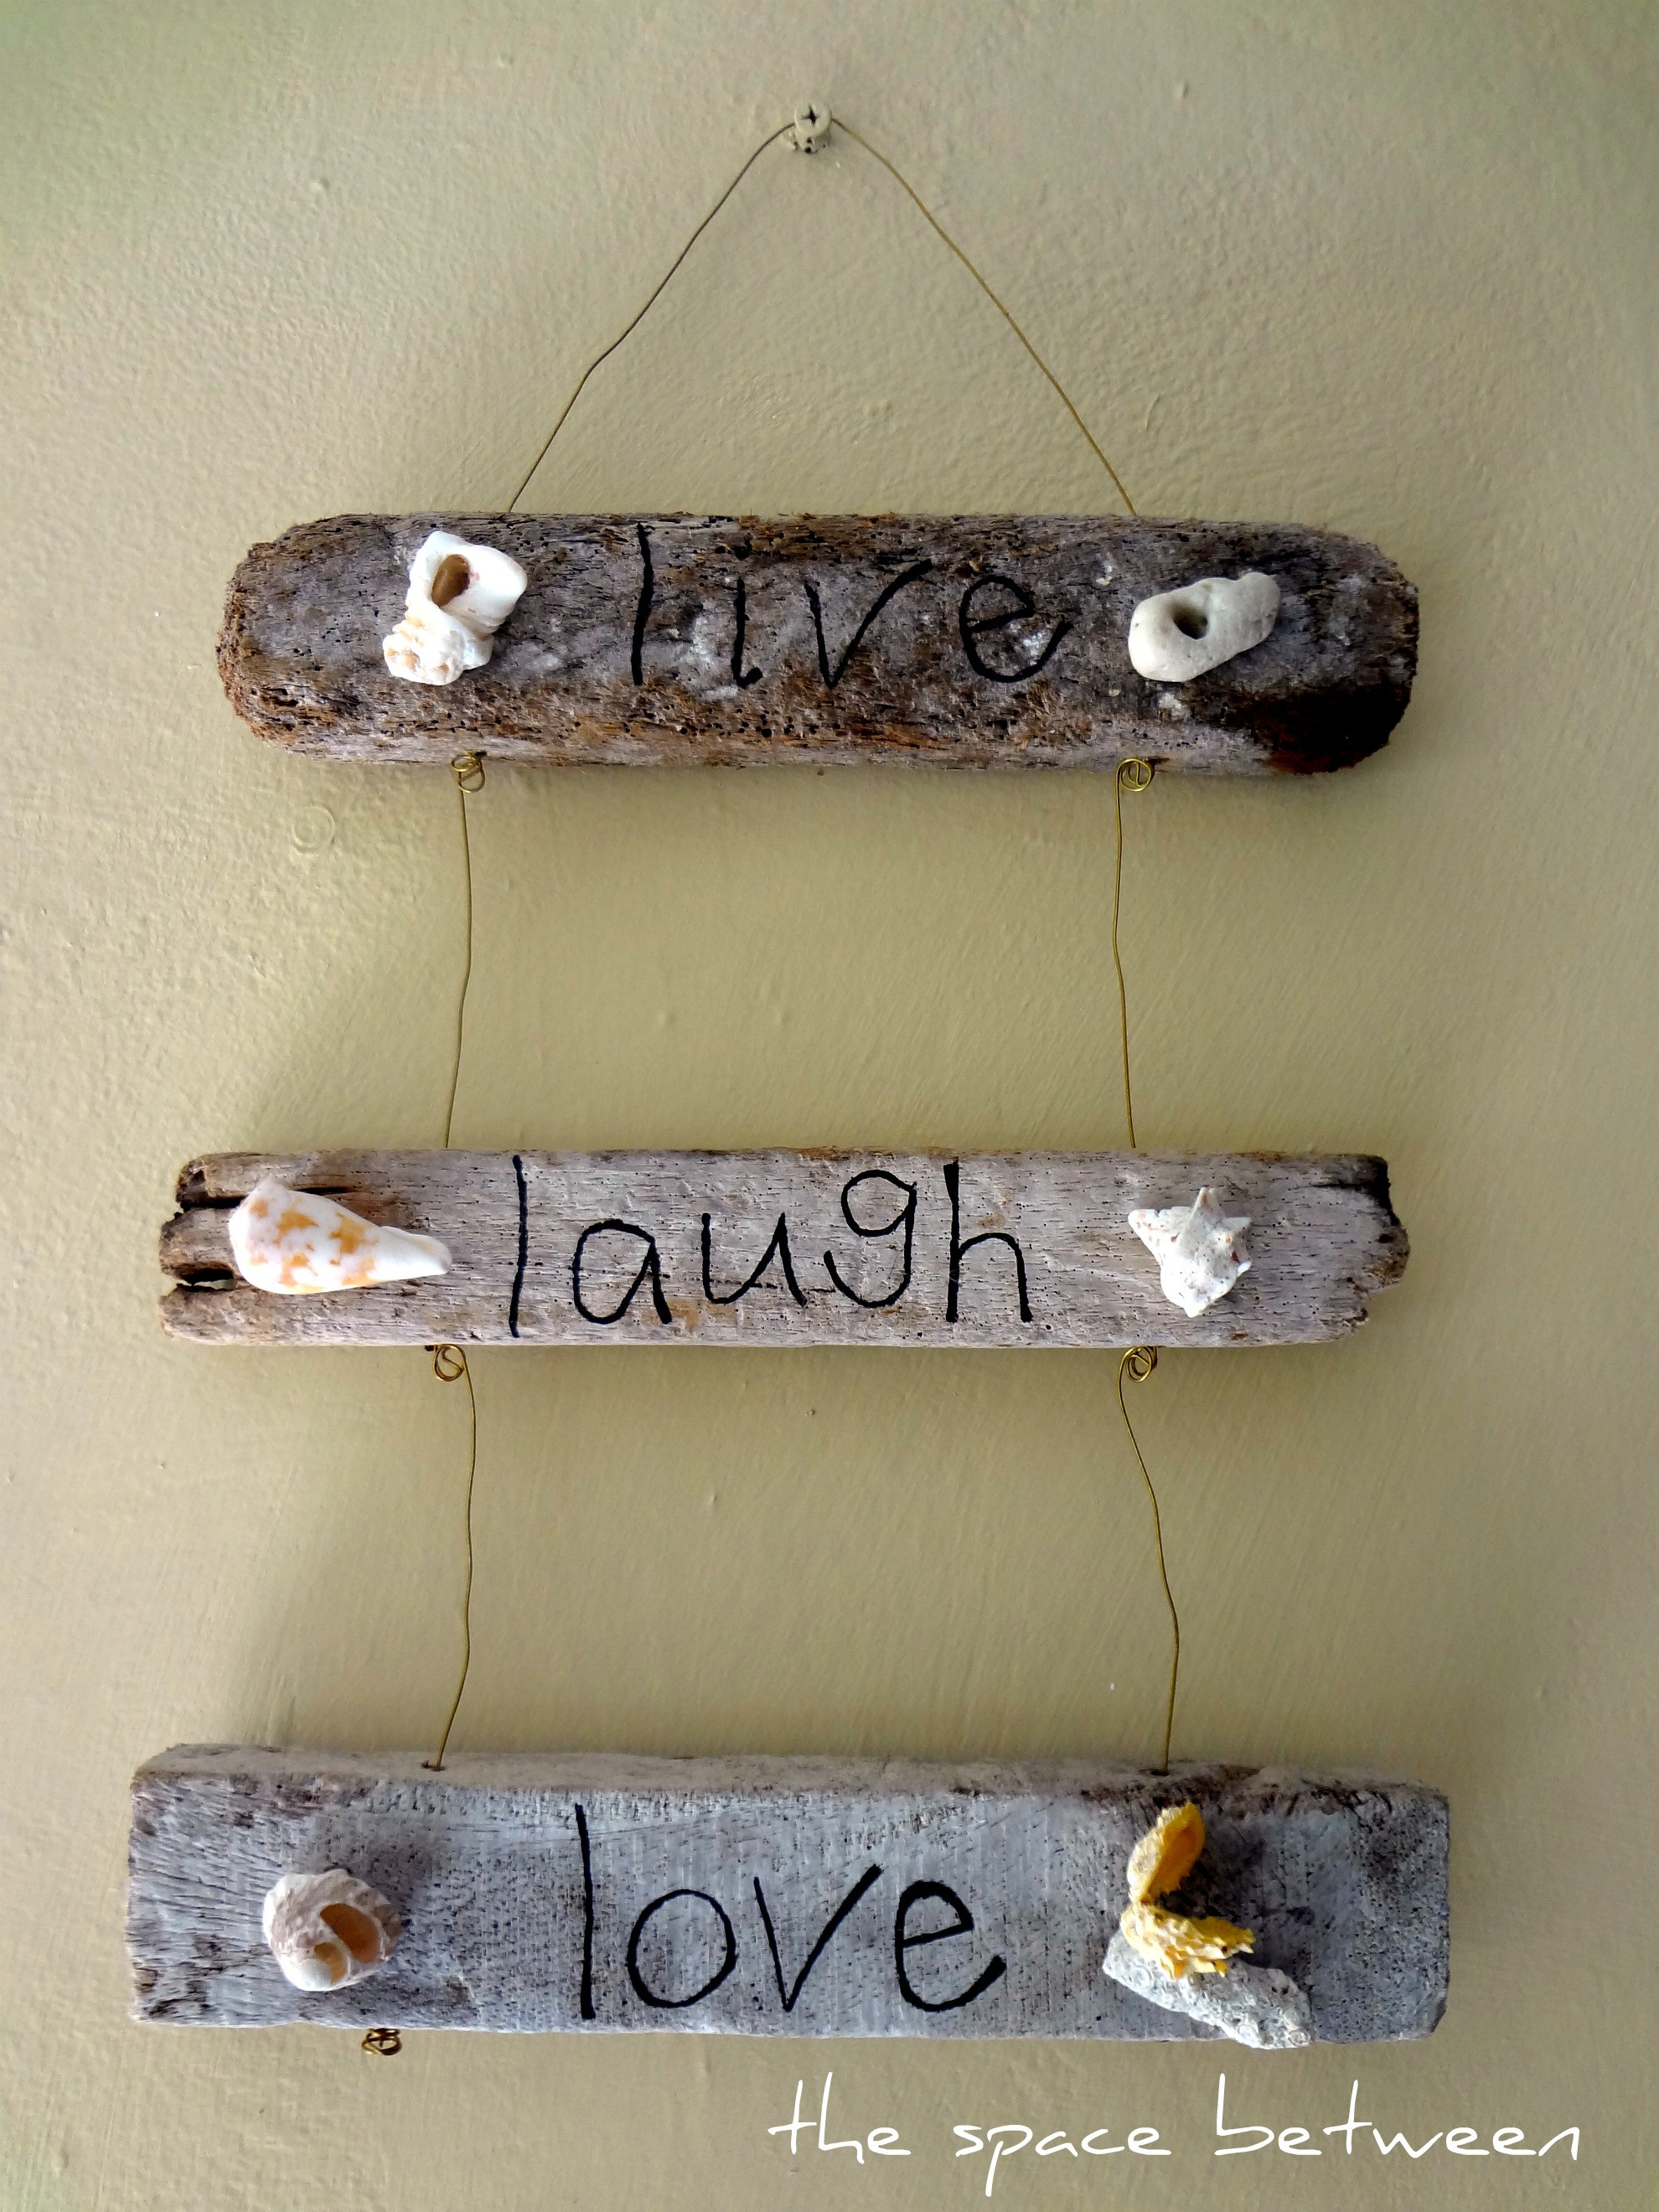 Best ideas about Driftwood Art DIY . Save or Pin 6 diy driftwood crafts Now.